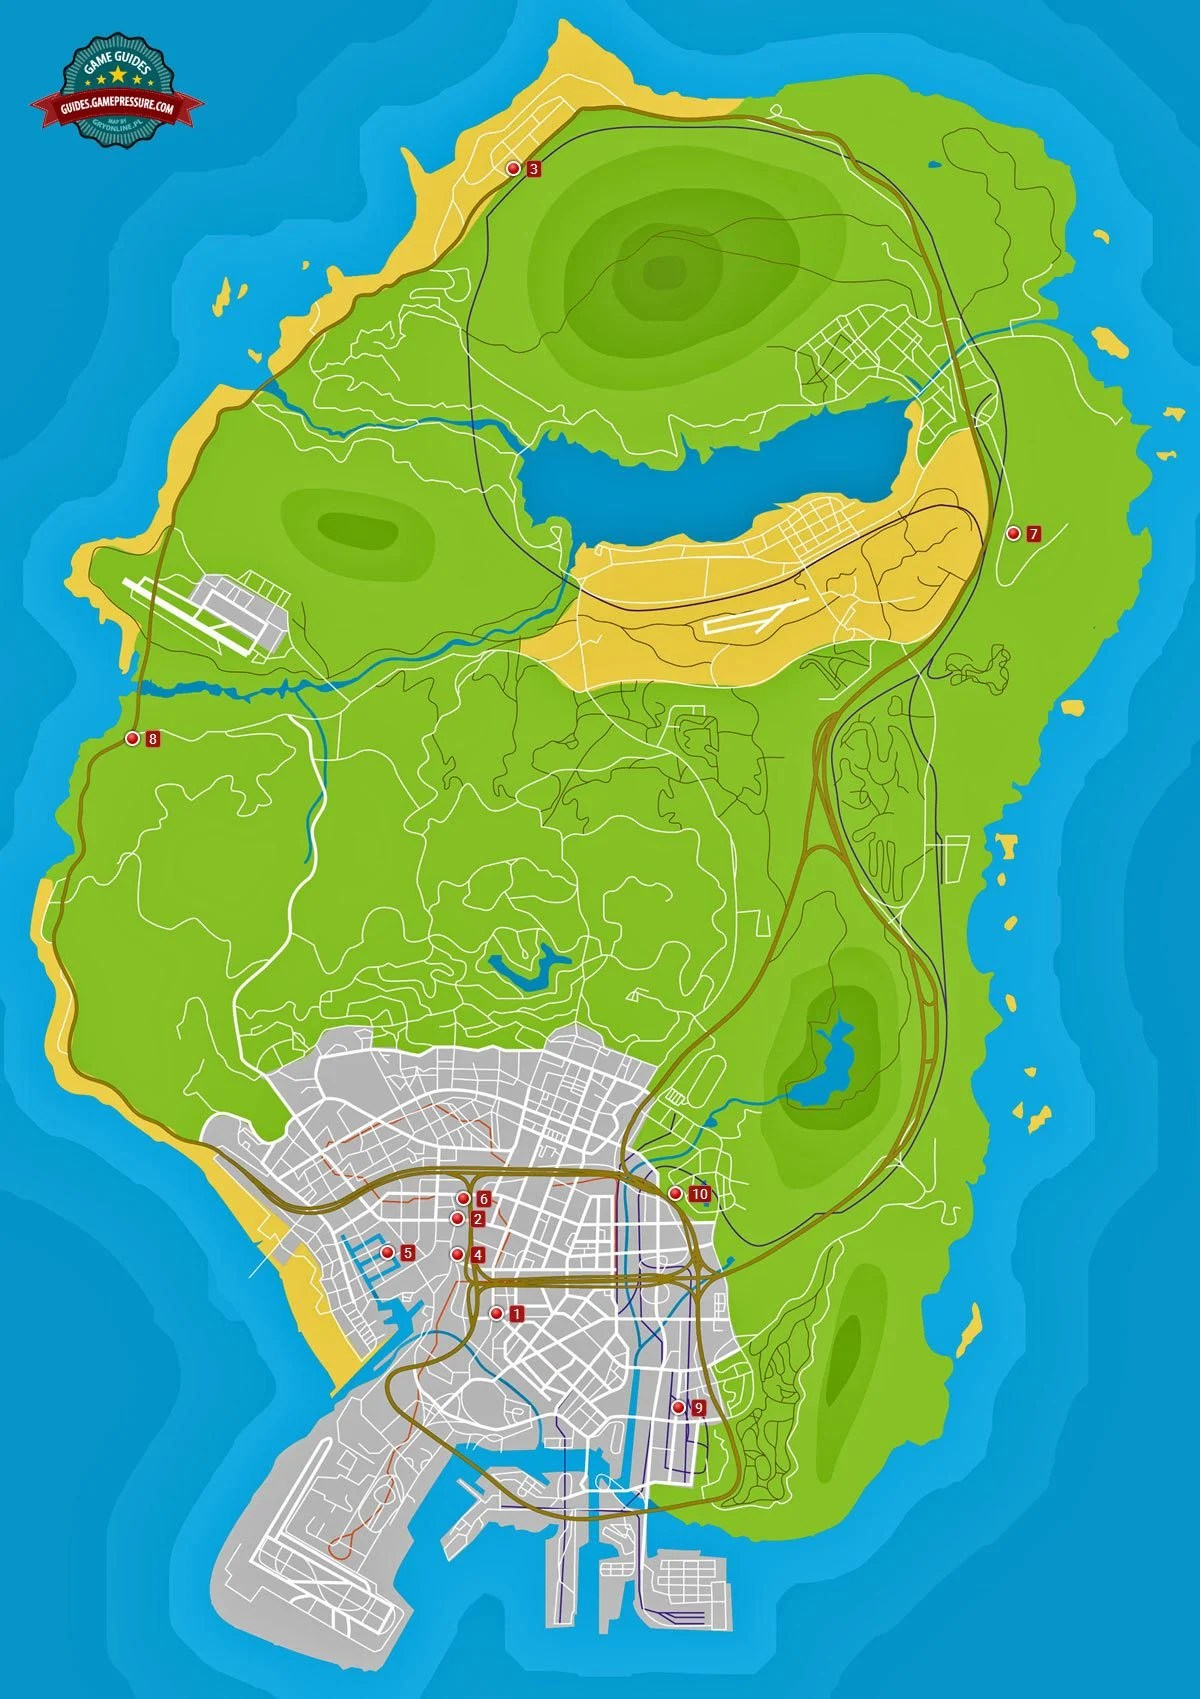 Gta 5 Secret Island Offline : secret, island, offline, Armored, Locations, Supercars, Gallery